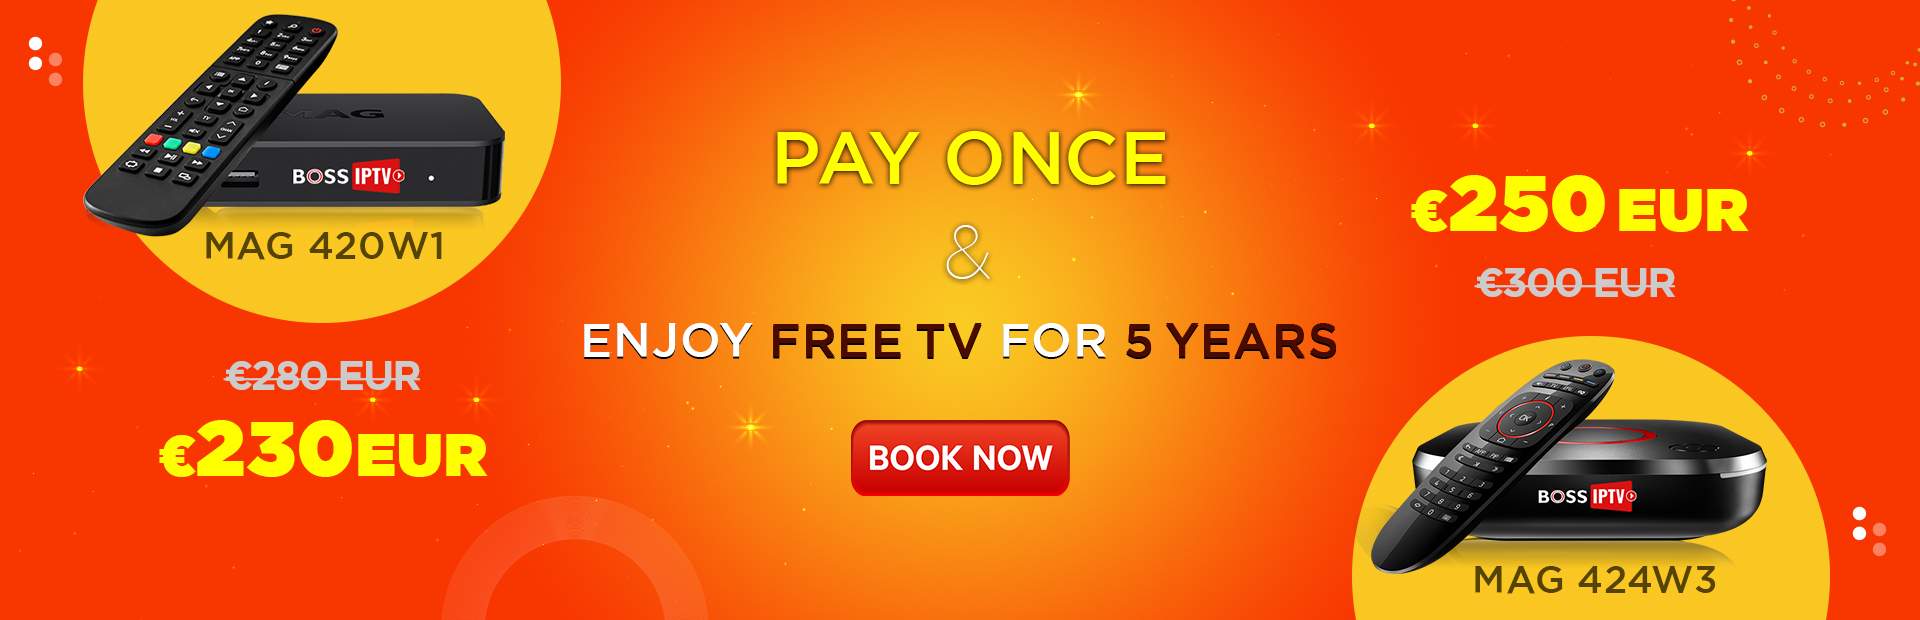 Pay once & Enjoy Free TV for 5 Years